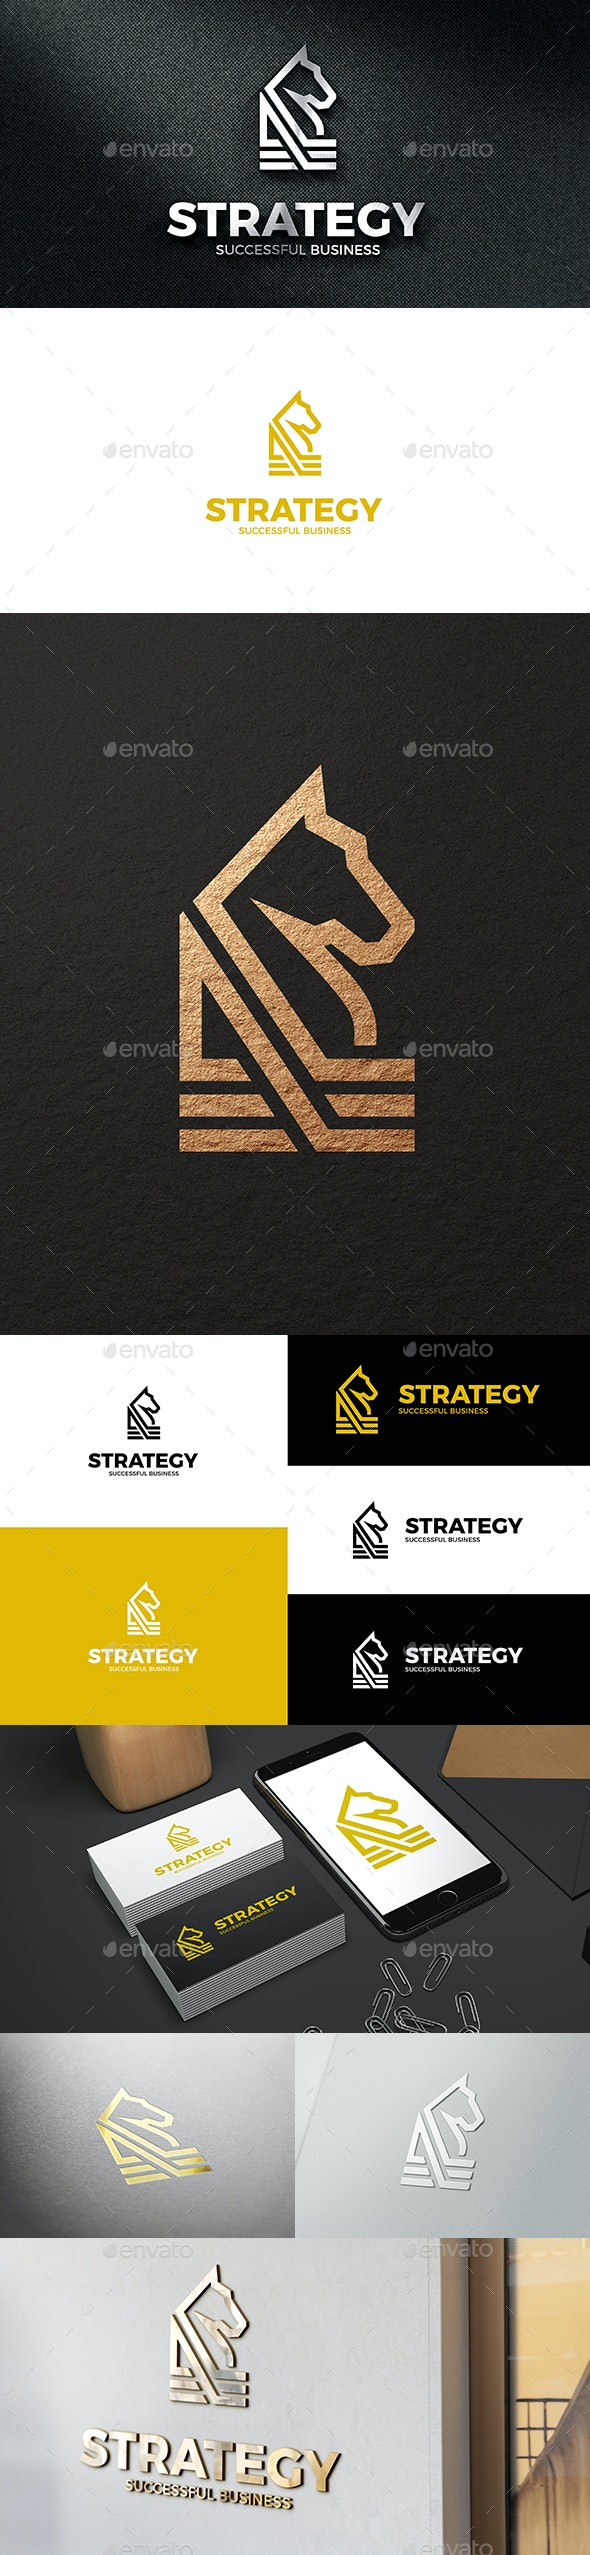 Strategy - Abstract Horse Clean Business Logo - Symbols Logo Templates